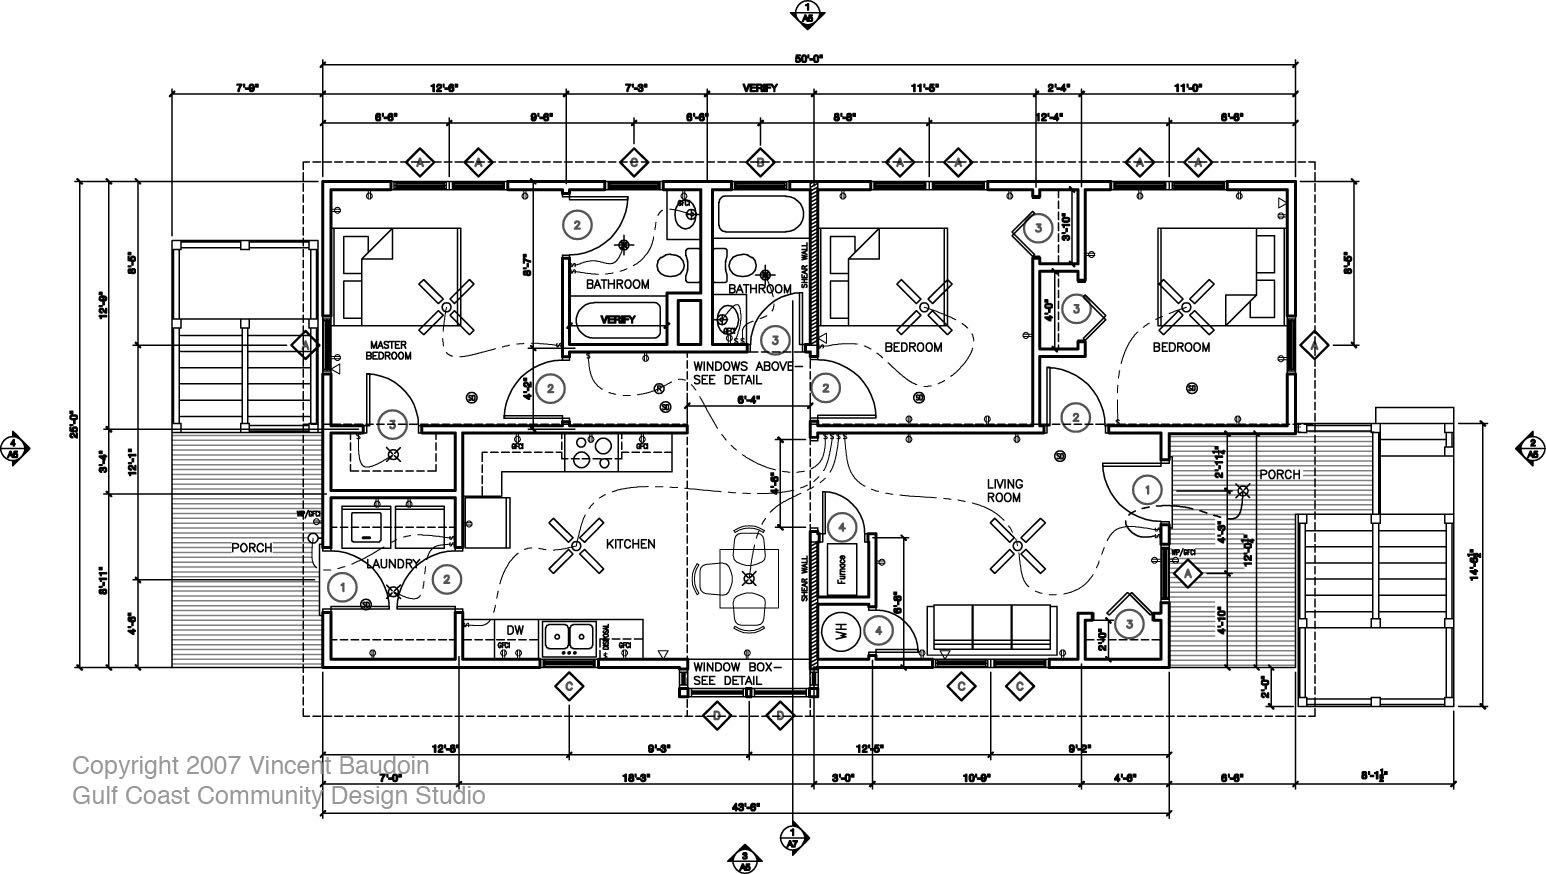 Residential house plans floor plans for Residential floor plans